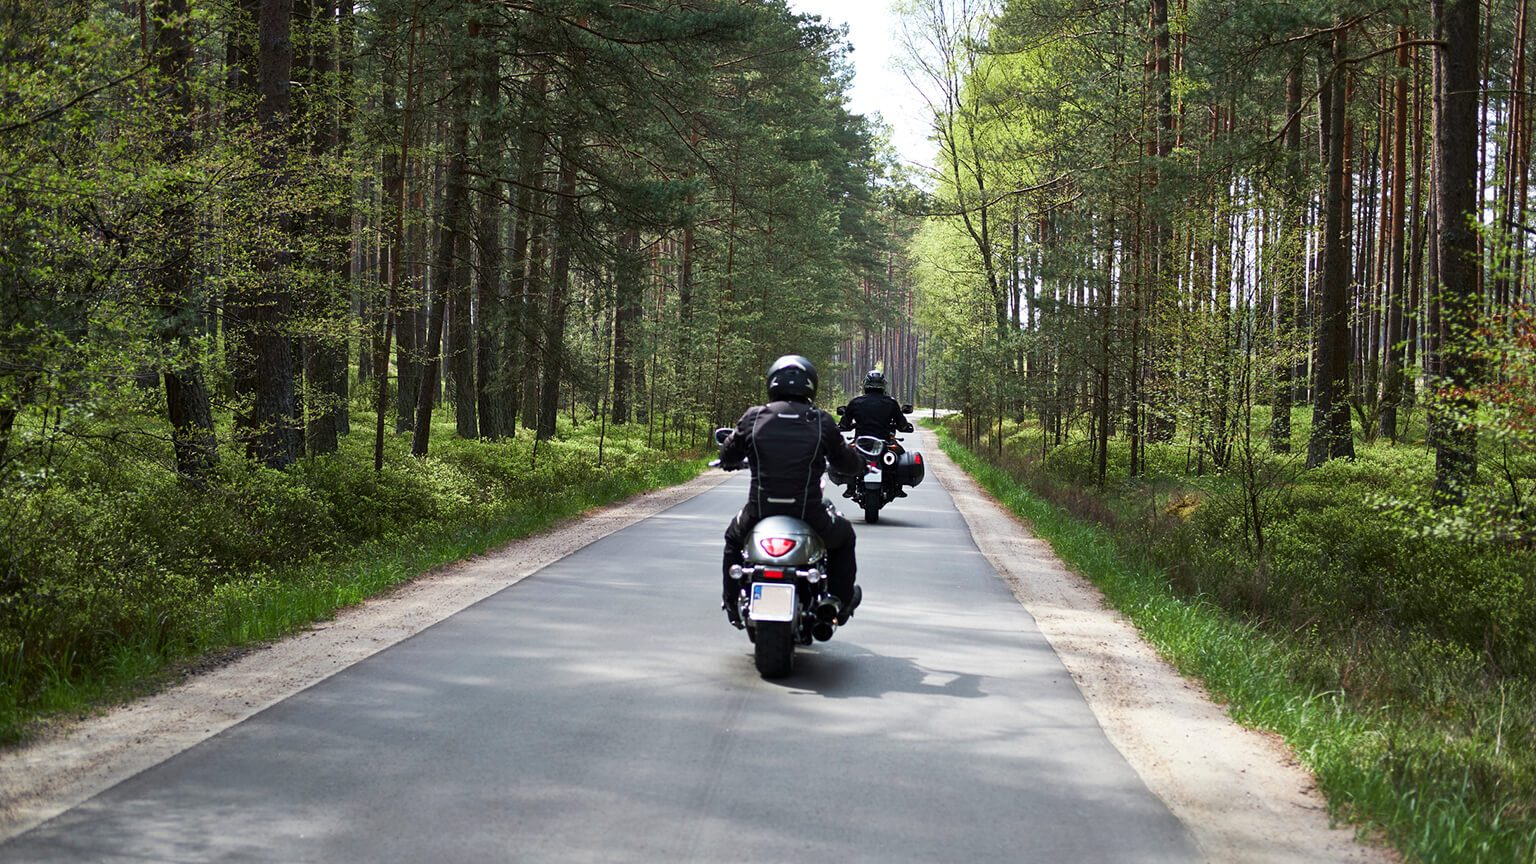 Motorcycles in the forest